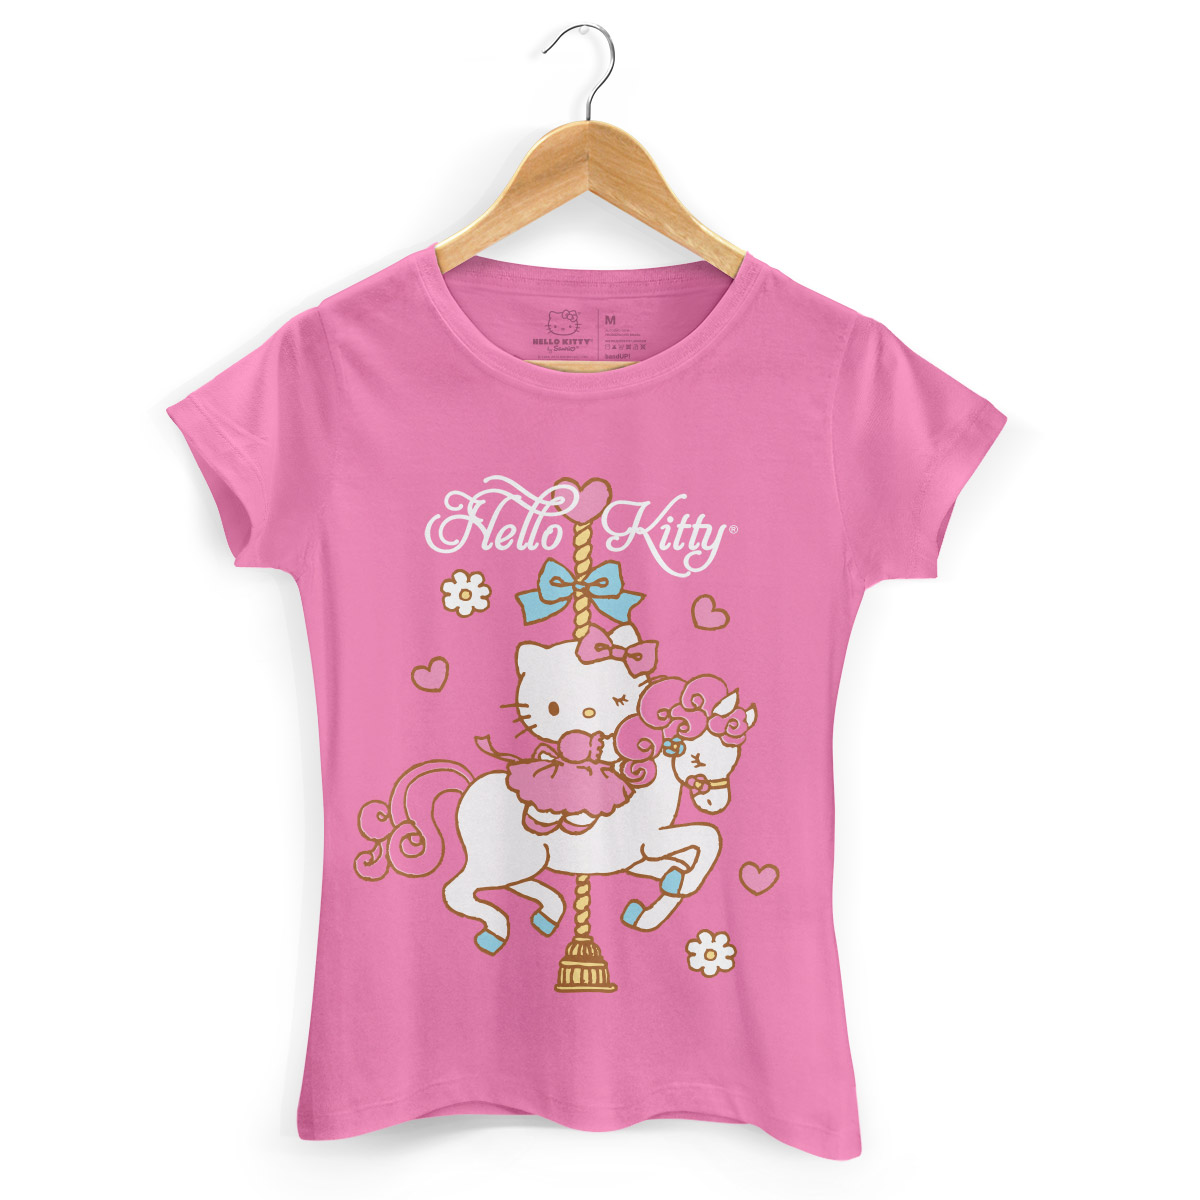 Camiseta Hello Kitty Carrossel